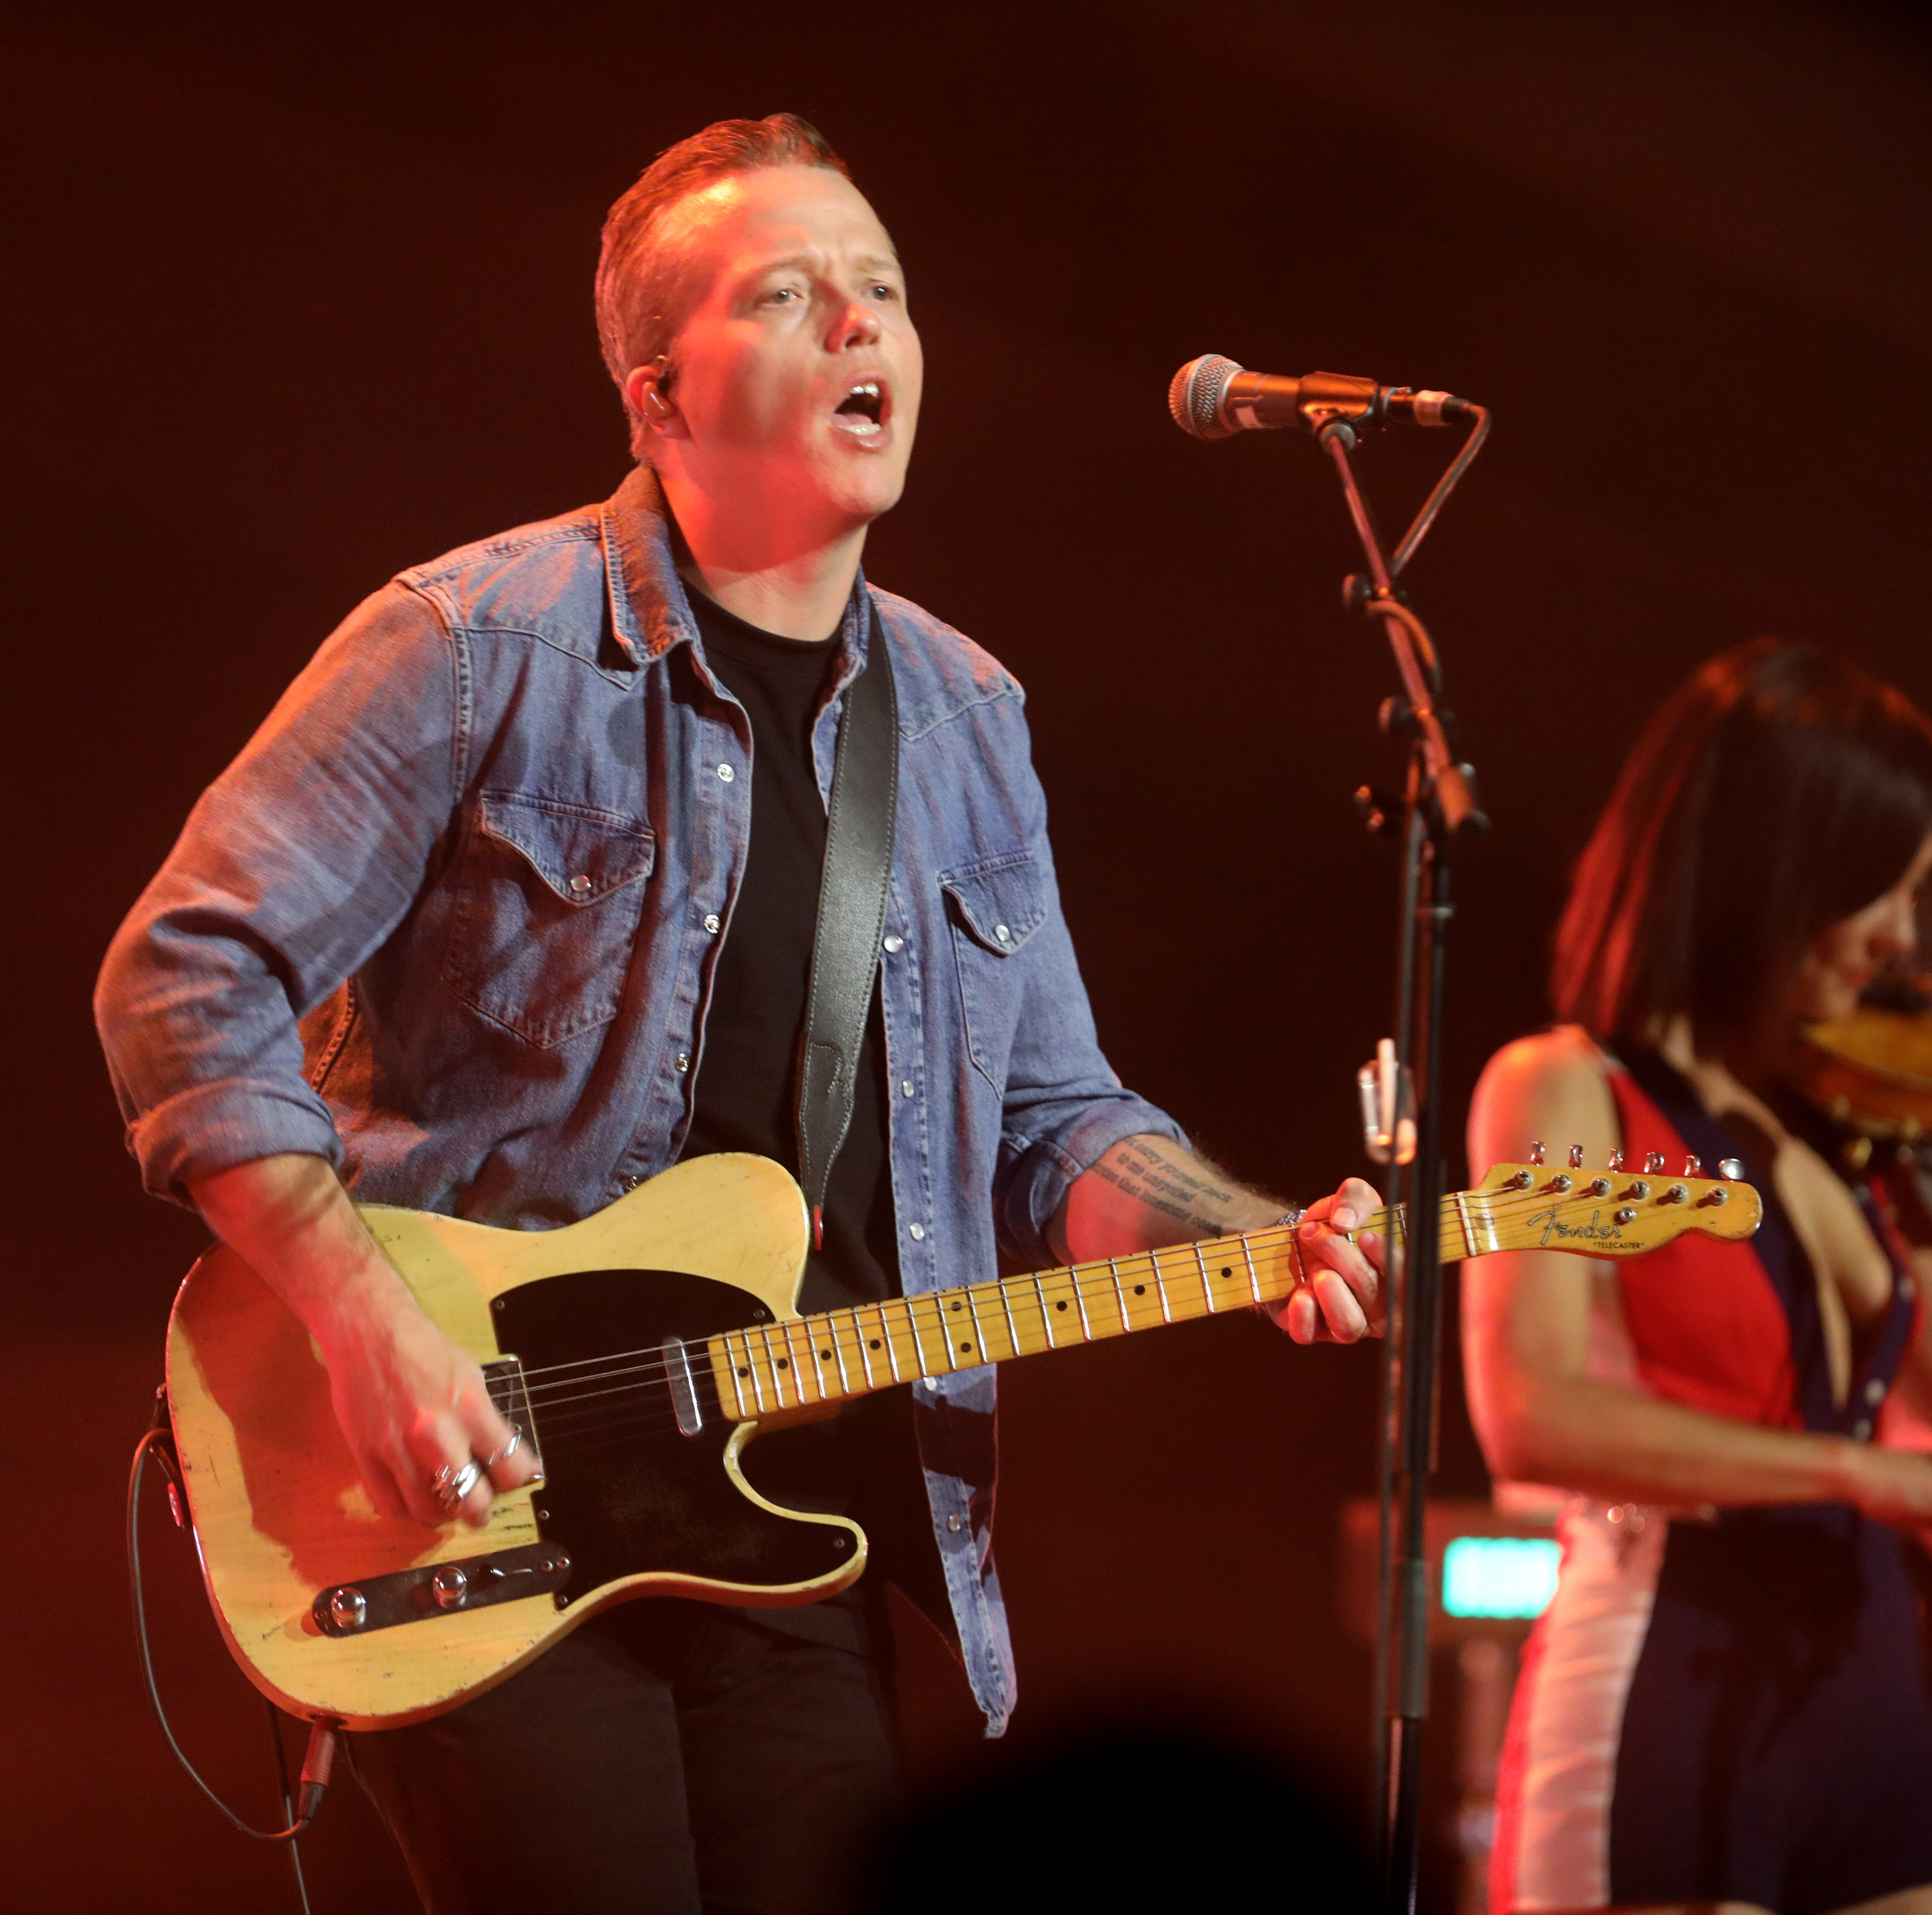 Jason Isbell at the Ryman: 'Tonight, we're home'